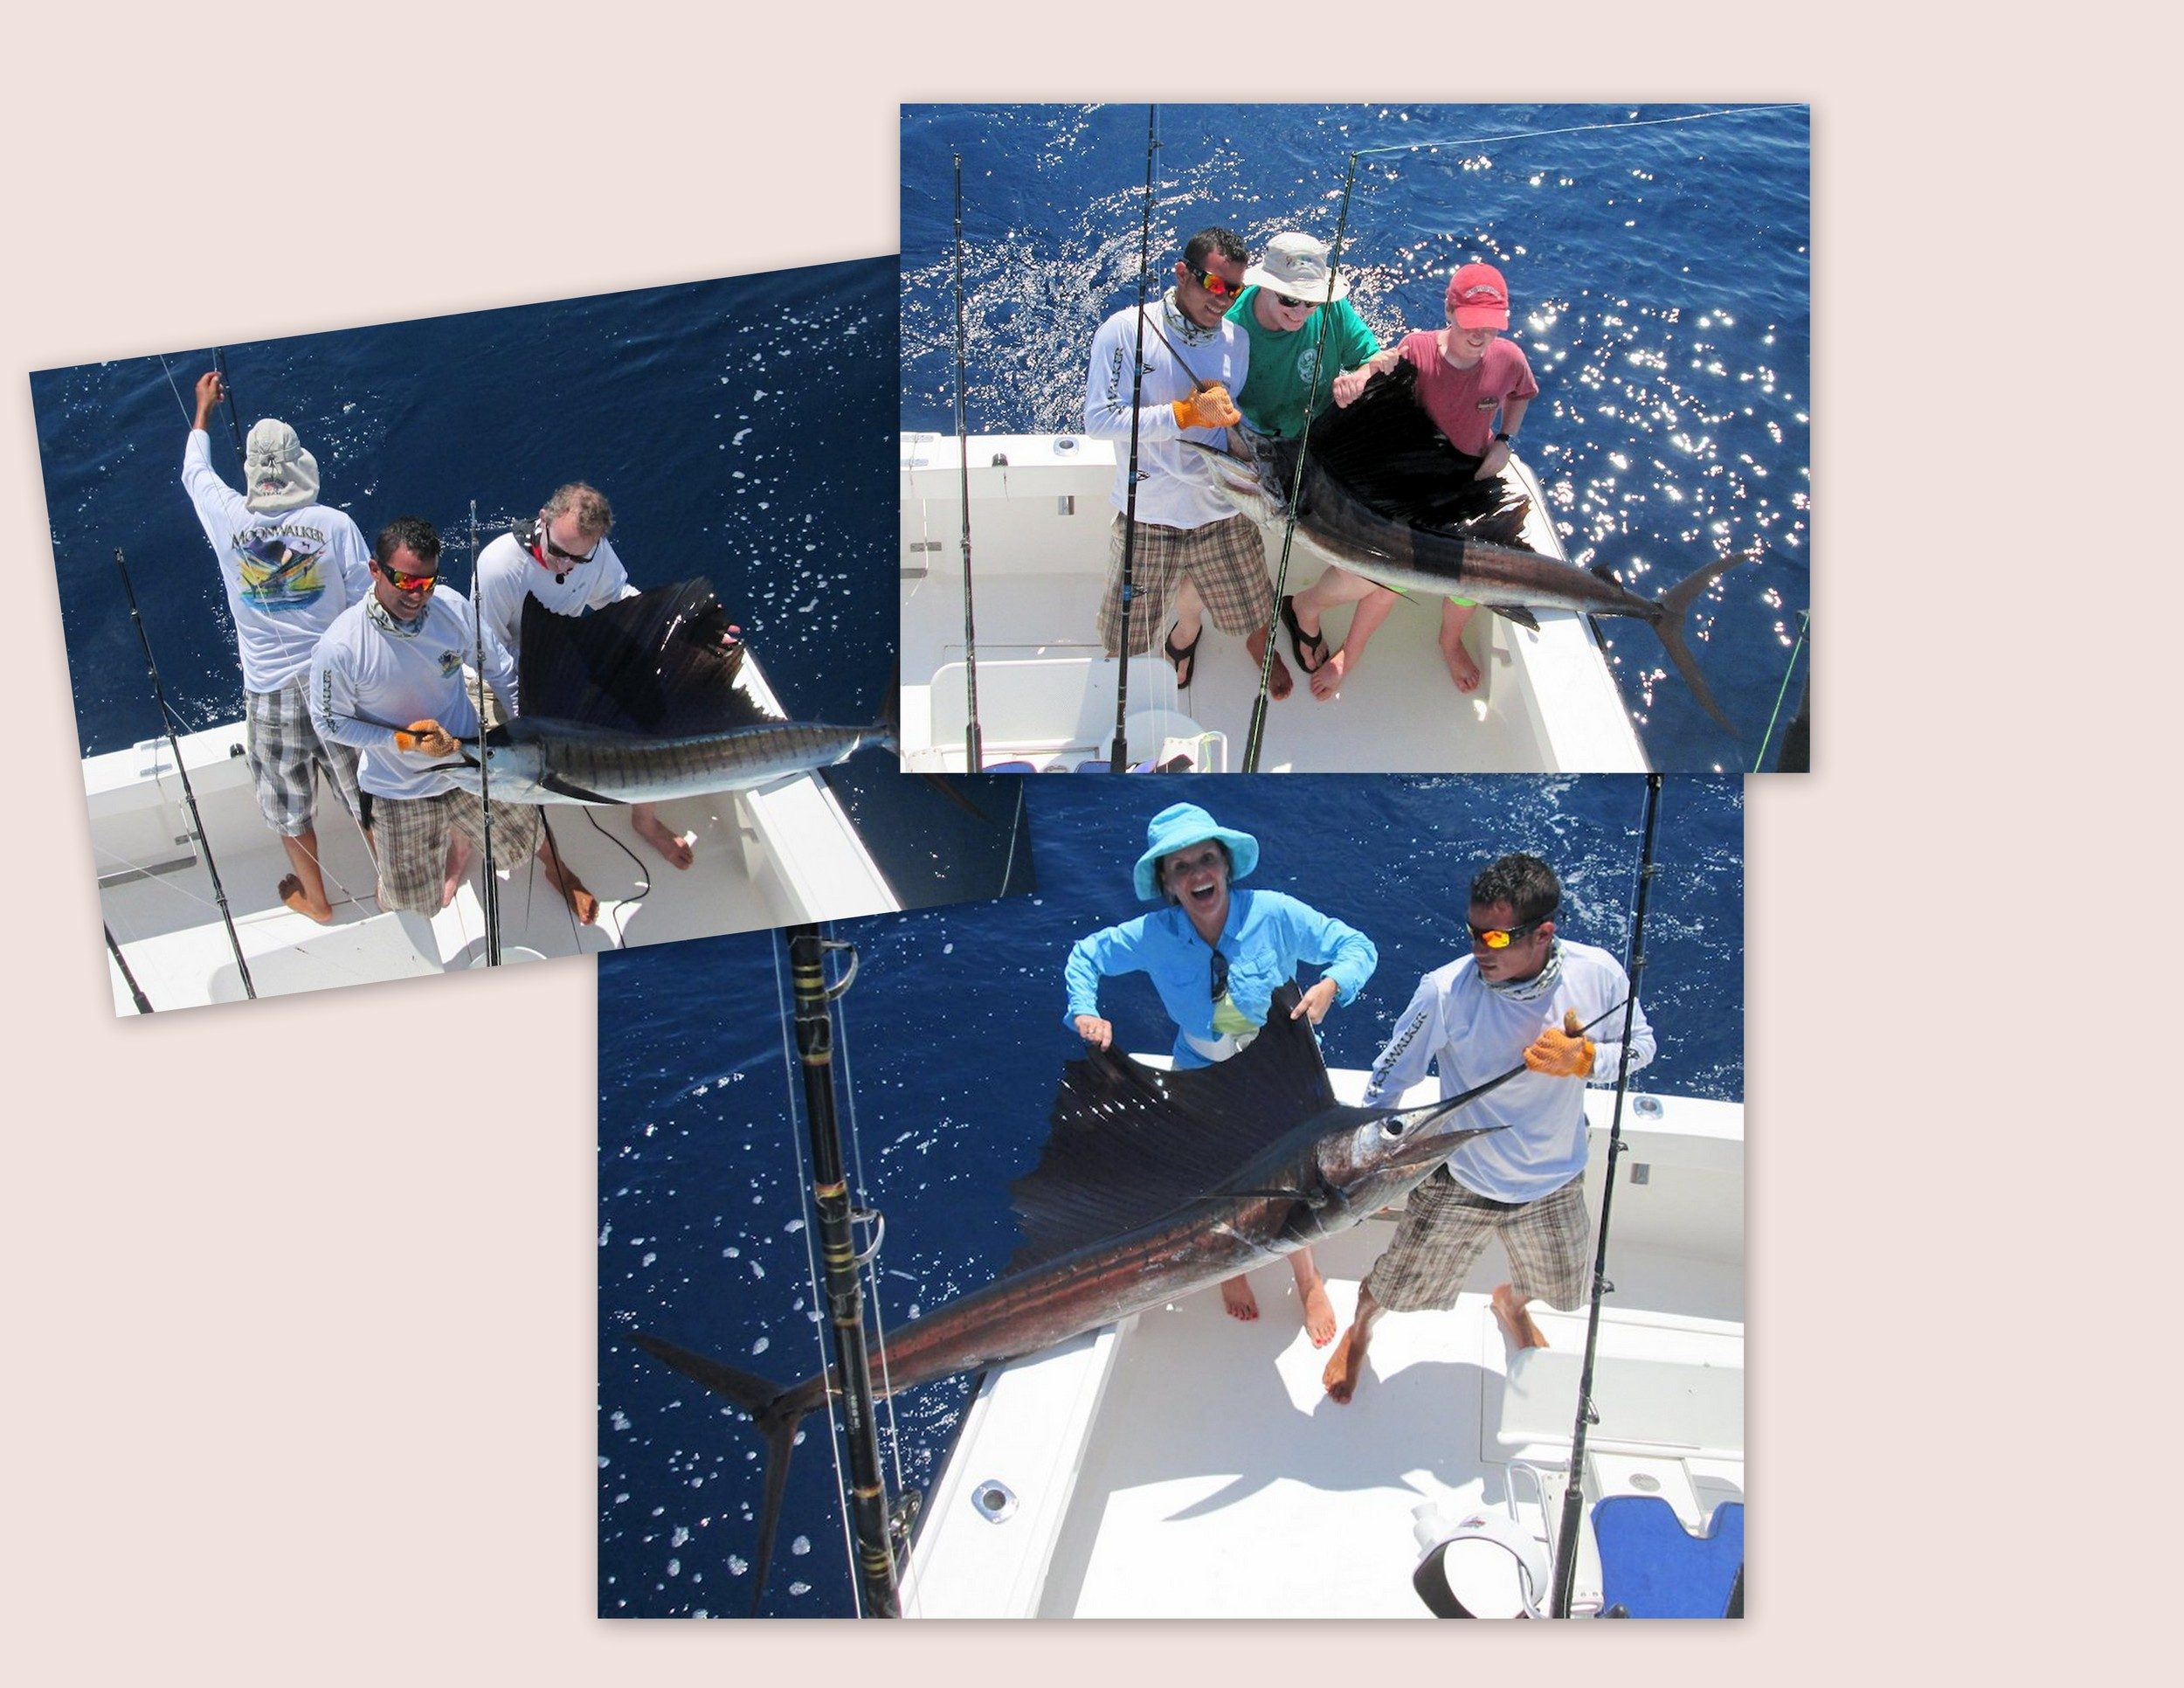 Nikki Seybold took her kids out for a Costa Rica offshore experience, and that is what they had with a Triple Hook up as soon as the lines were in the water which satisfied all 3 children at once.  No more fighting over who gets the first fish.  The afternoon continued with constant hook ups and the Release of 15 Sailfish